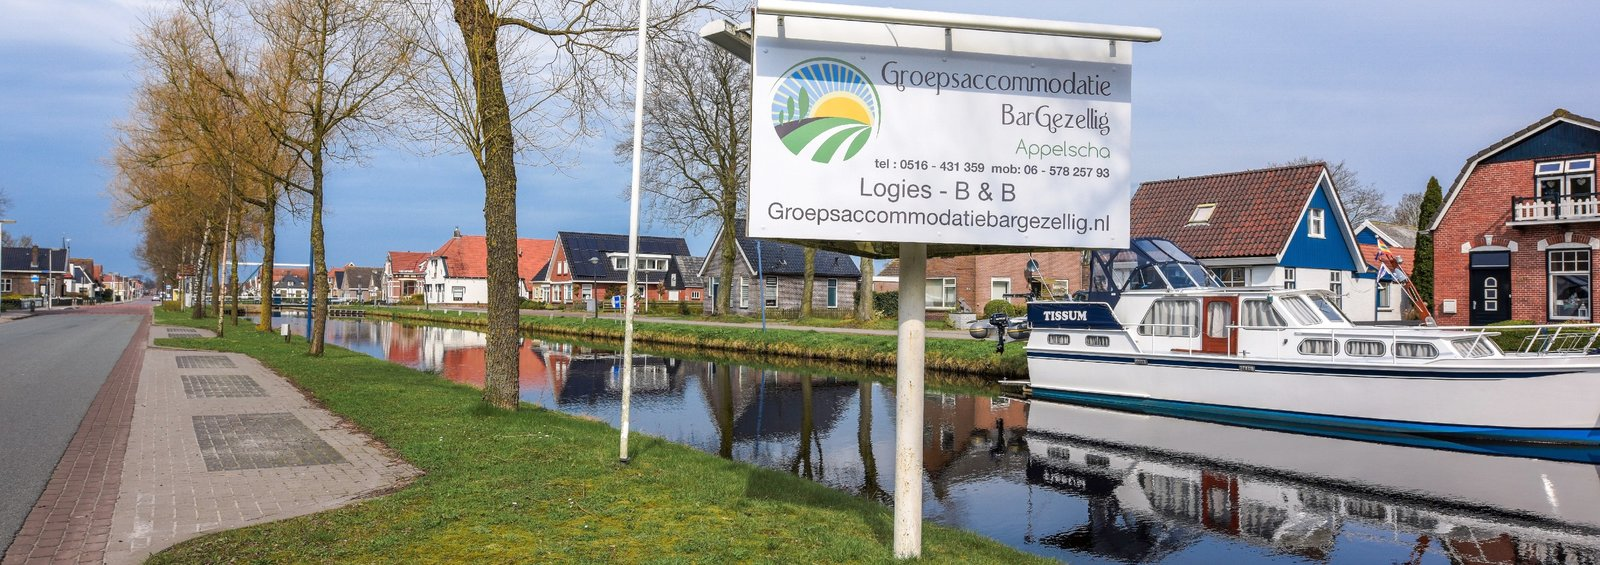 Groeps accommodatie BarGezellig in Appelscha